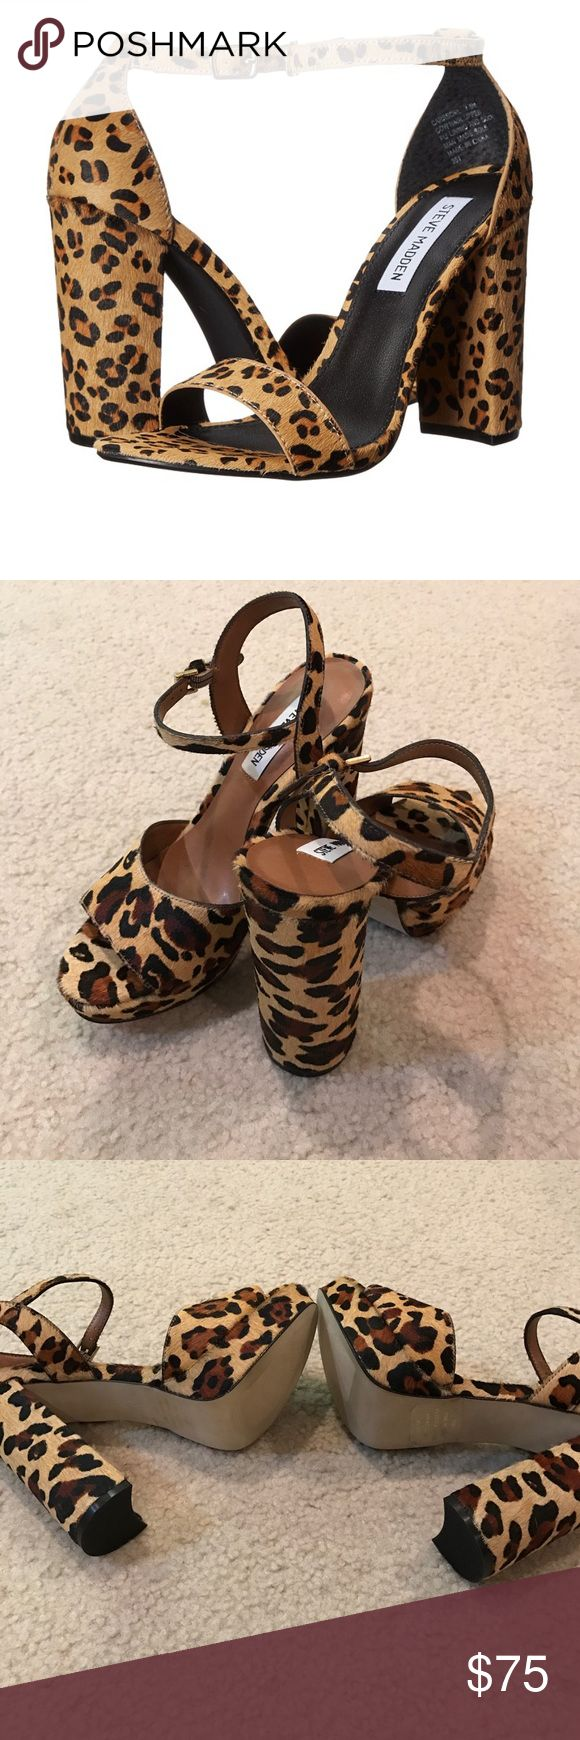 "Brand new sexy Steve Madden leopard heels Brand new sexy Steve Madden leopard heels in size 7.5. New without tags. I bought these thinking I would one day wear it but honestly with 2 toddlers I never wear any heels anymore! 4"" high heel and 1/4"" platform height. No Trades or holds. Steve Madden Shoes Heels"